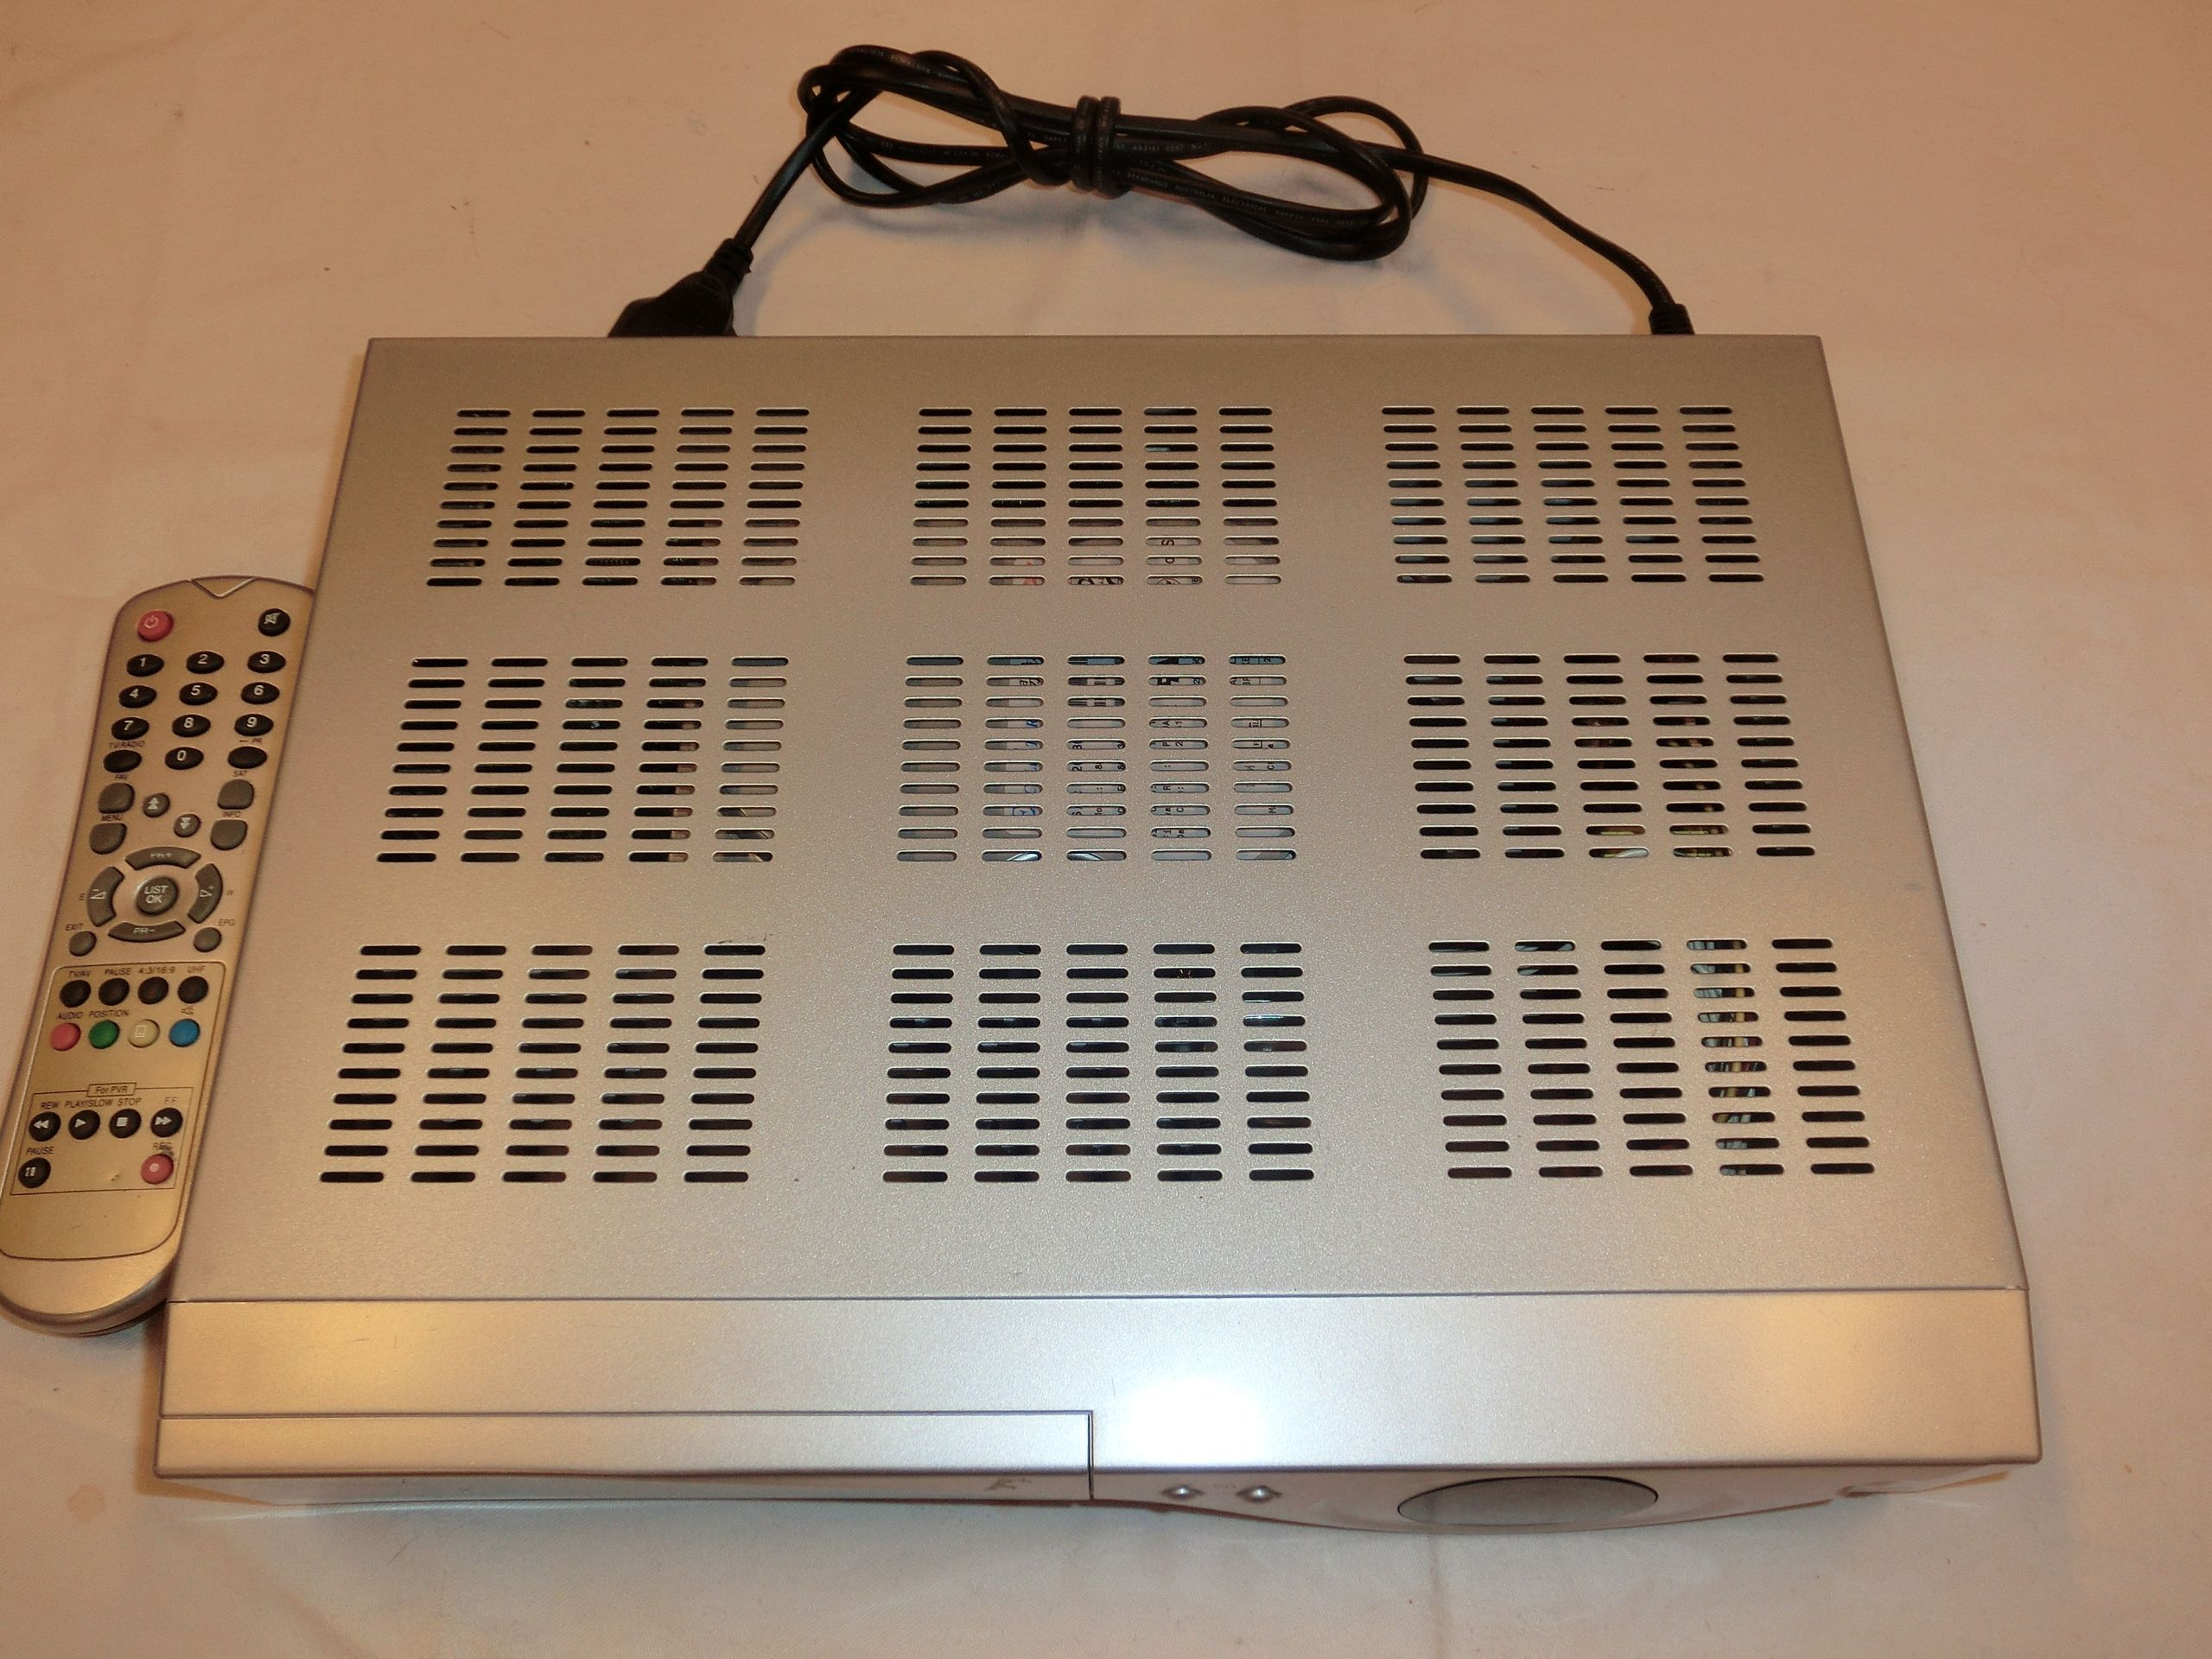 Skymaster dvr 7400 digitaler sat receiver mit 80gb hdd for A decoration none